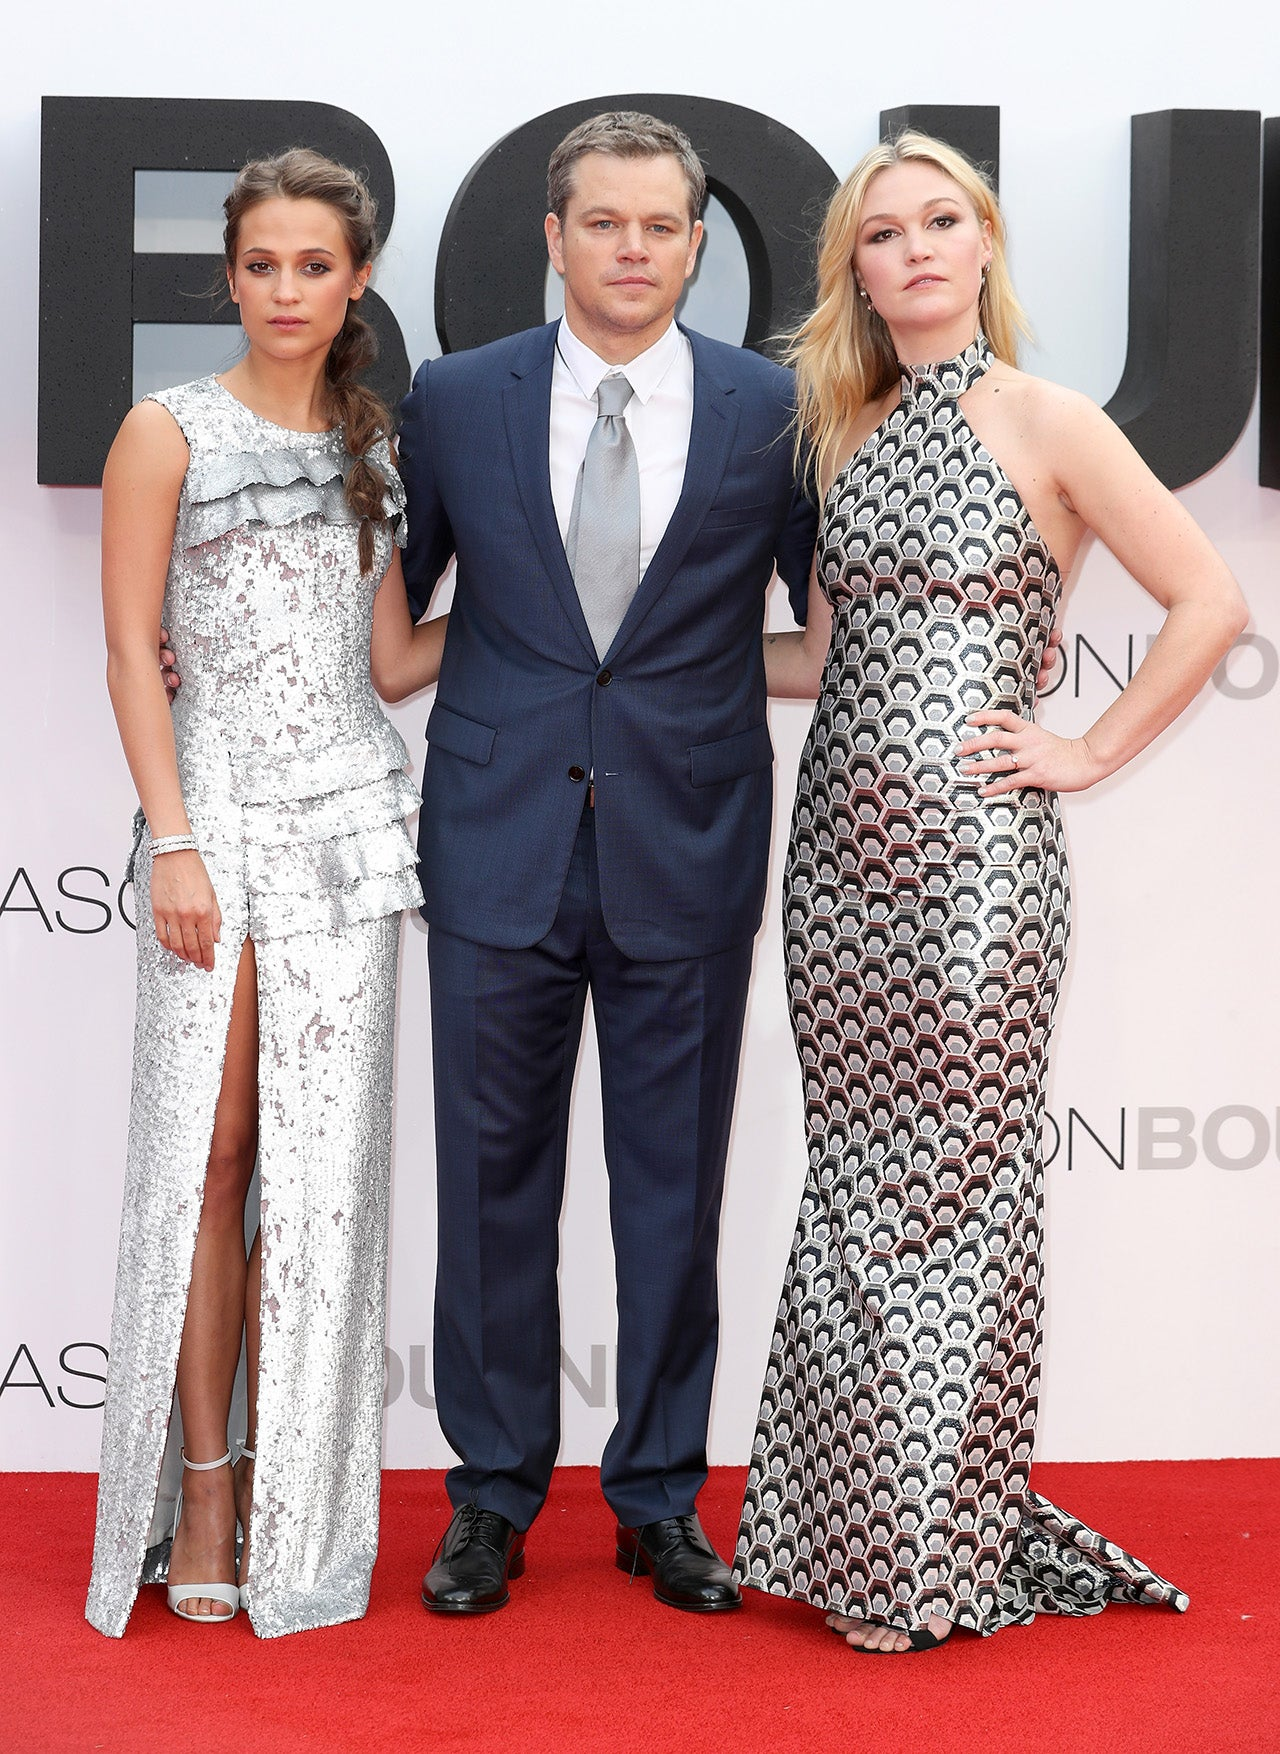 Matt Damon's Wife Luciana Barroso's Legs Steal the Show at ...